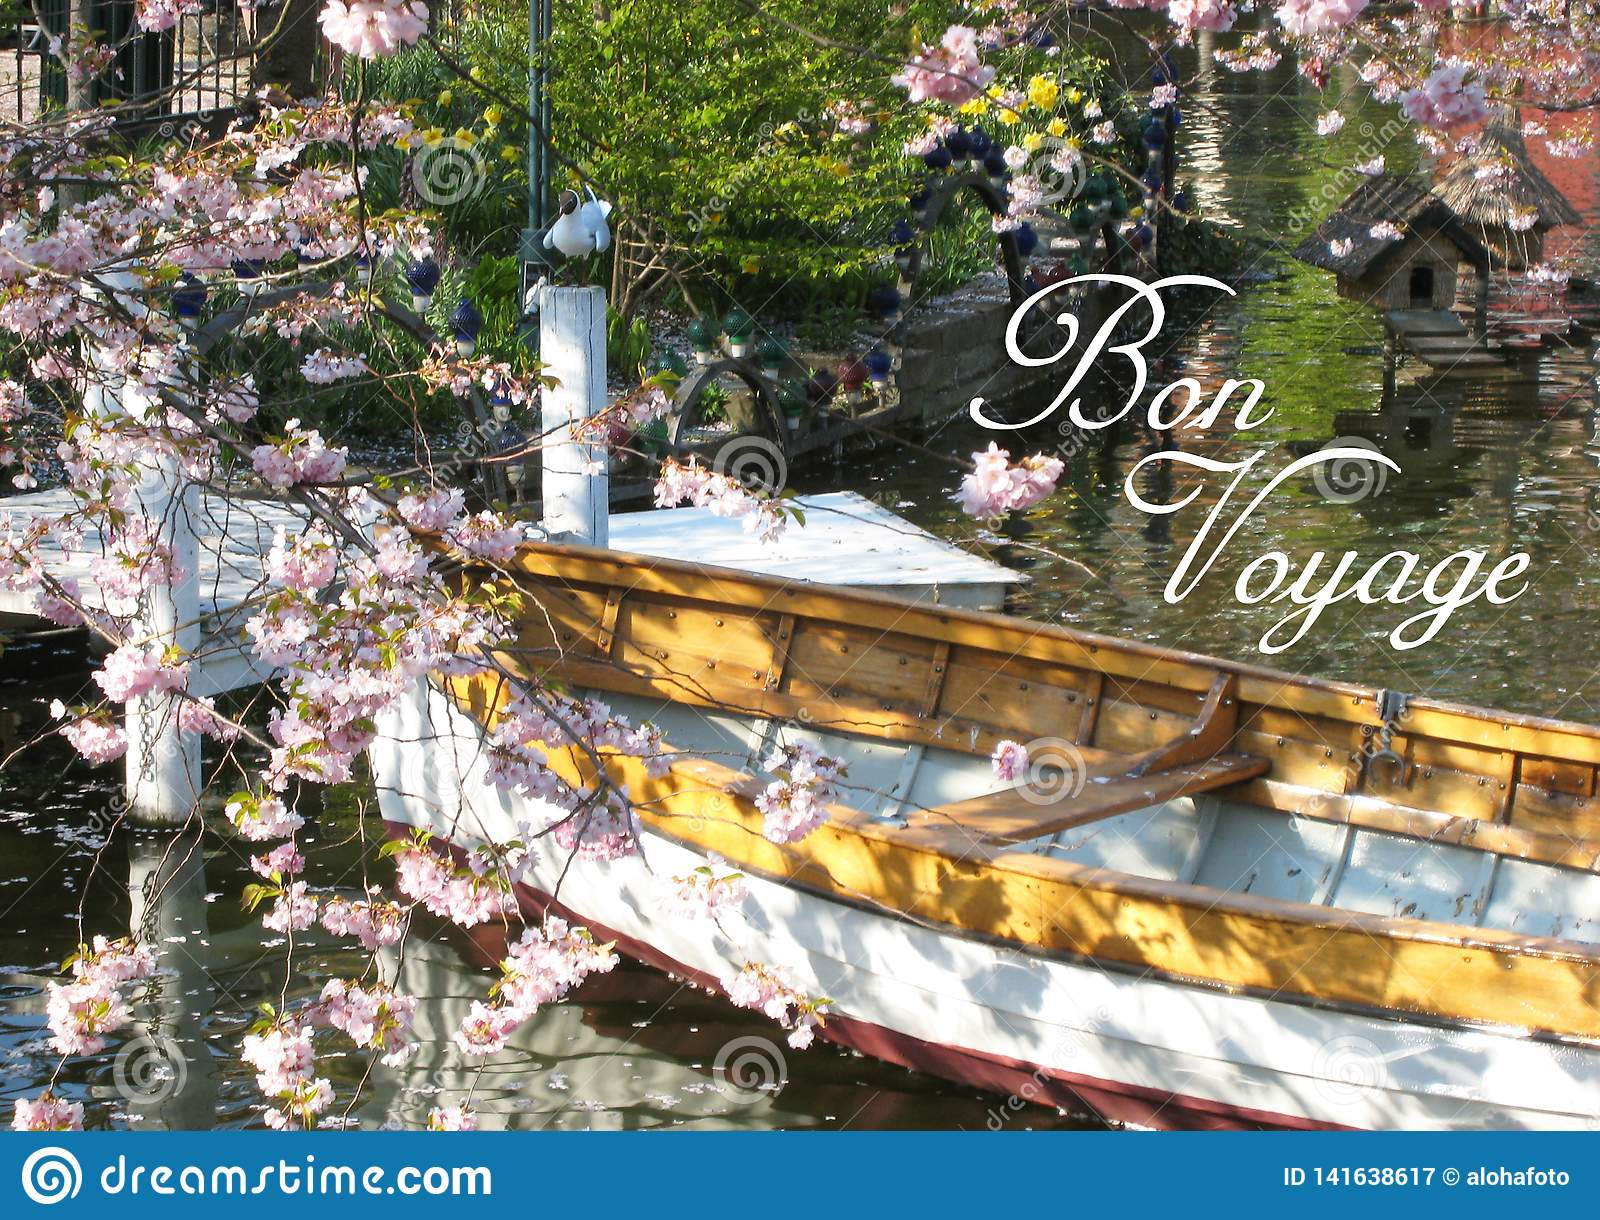 Postcard with a beautifully view of a wooden boat in Copenhagen in Denmark surrounded by a sea of flowers in a small lake